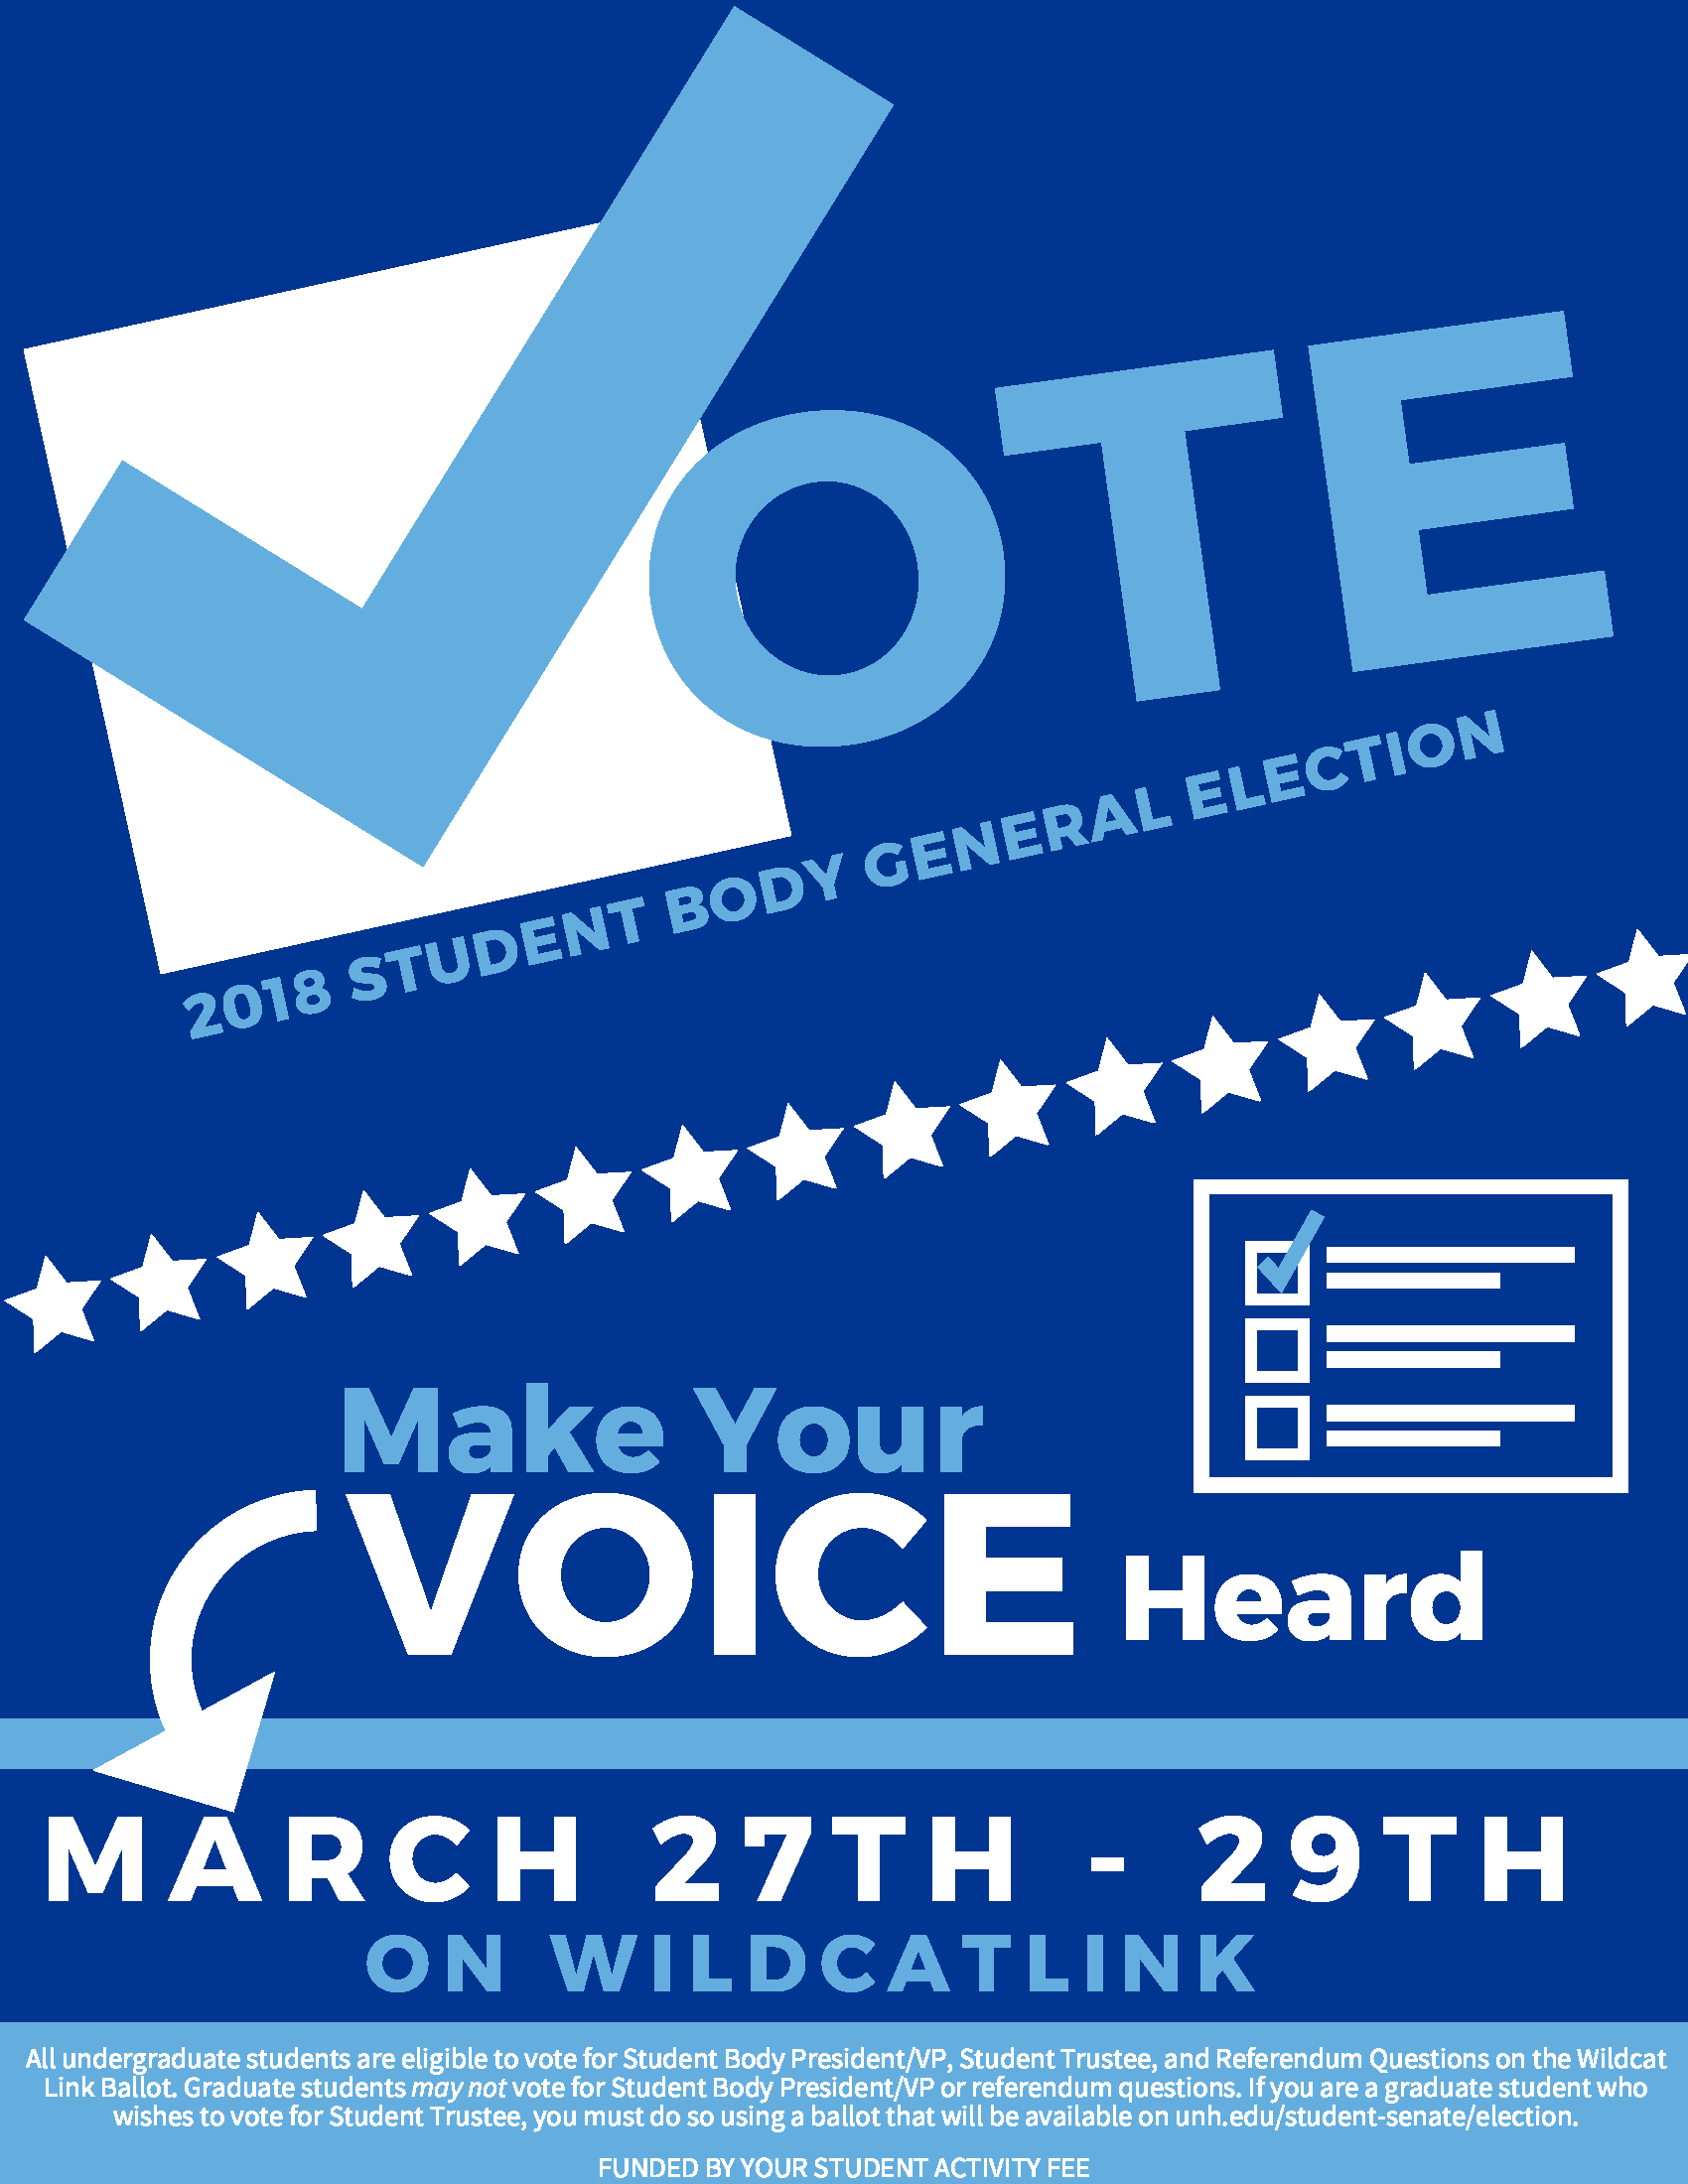 Information regarding VOTE is as follows Create Your Own Tag: is #Election and Start date is March 23 2018 and End Date is March 30 2018 and File is Browse and Email is esmith2010@maine.rr.com and Name is Evan Smith and File Name is Vote-Student-Elections_comp.jpg and Affiliation is Recognized Student Organization and Panel is Side and Group Name is Student Senate and Name of Ad/Event is VOTE and